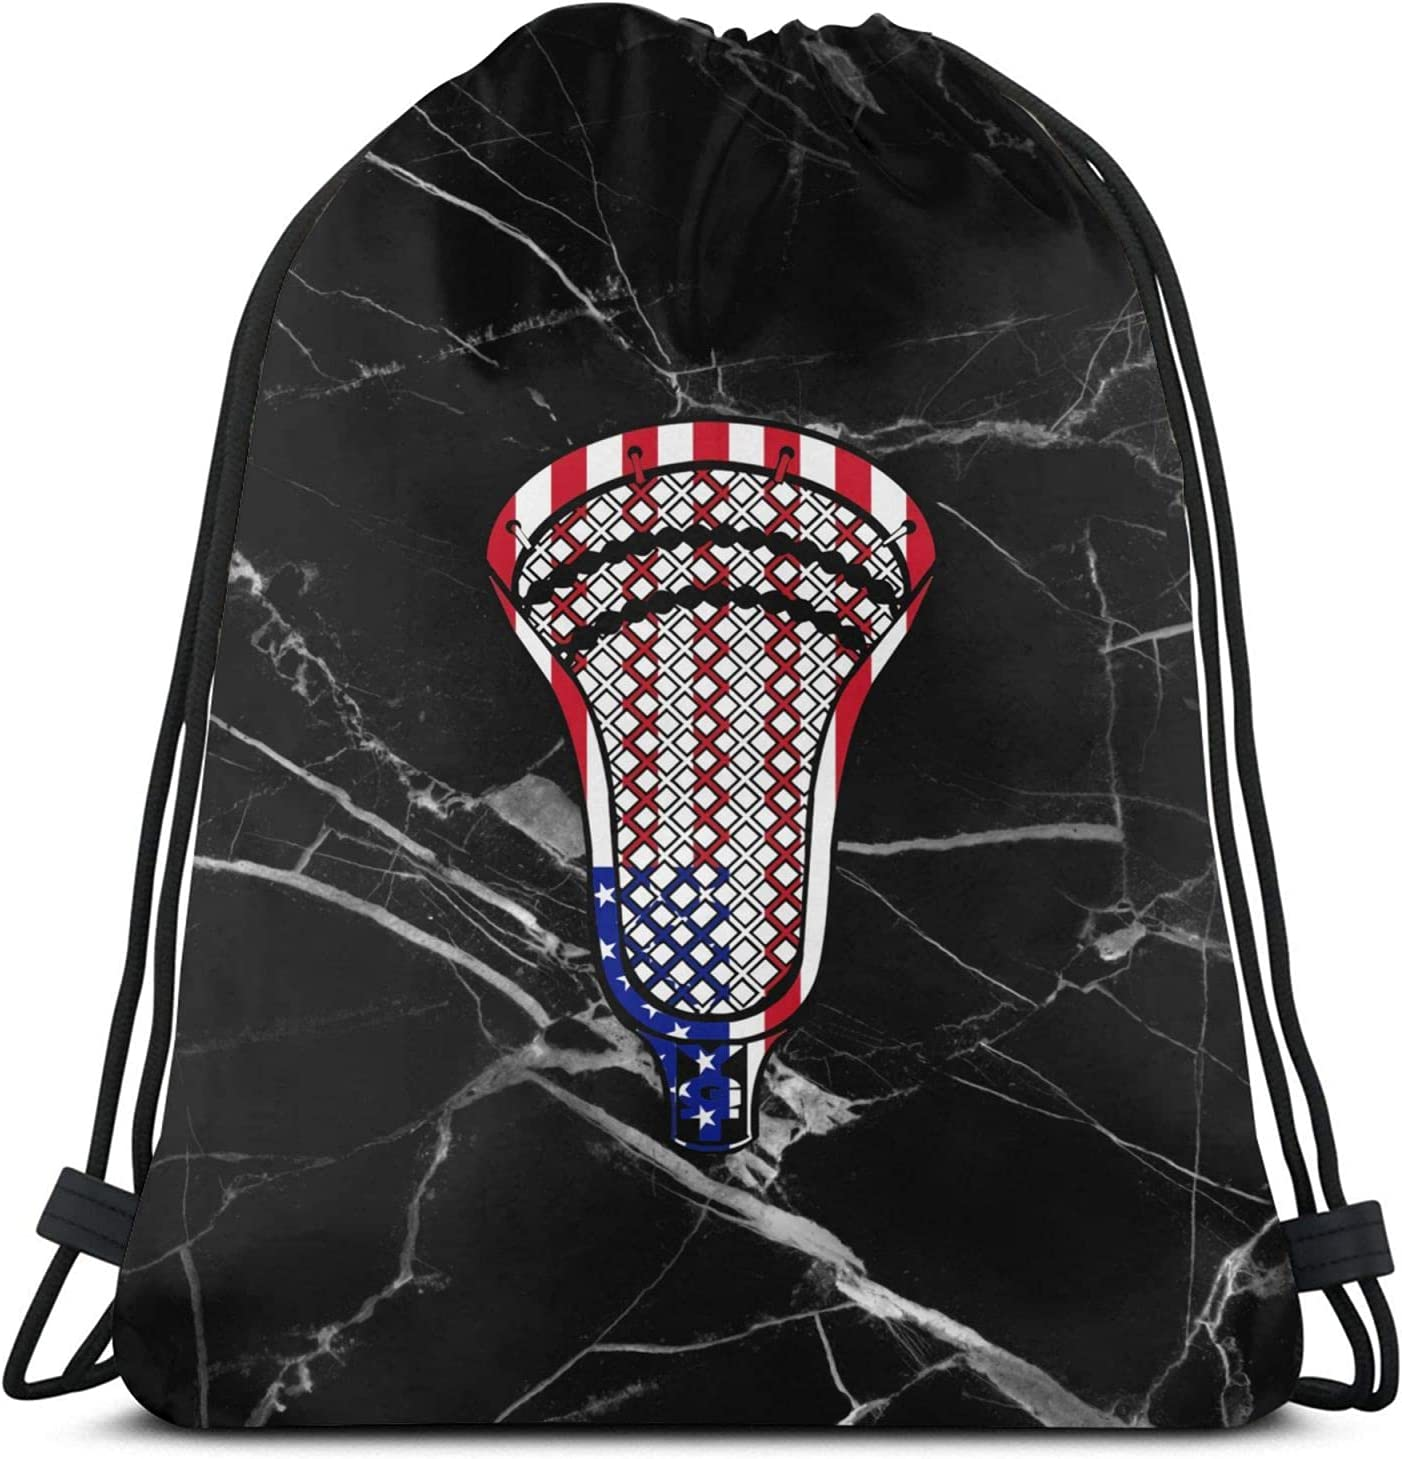 Lacrosse Head Flag Drawstring Backpack Bag Popular shop is the lowest price challenge String Gym Ba Workout Large special price !!